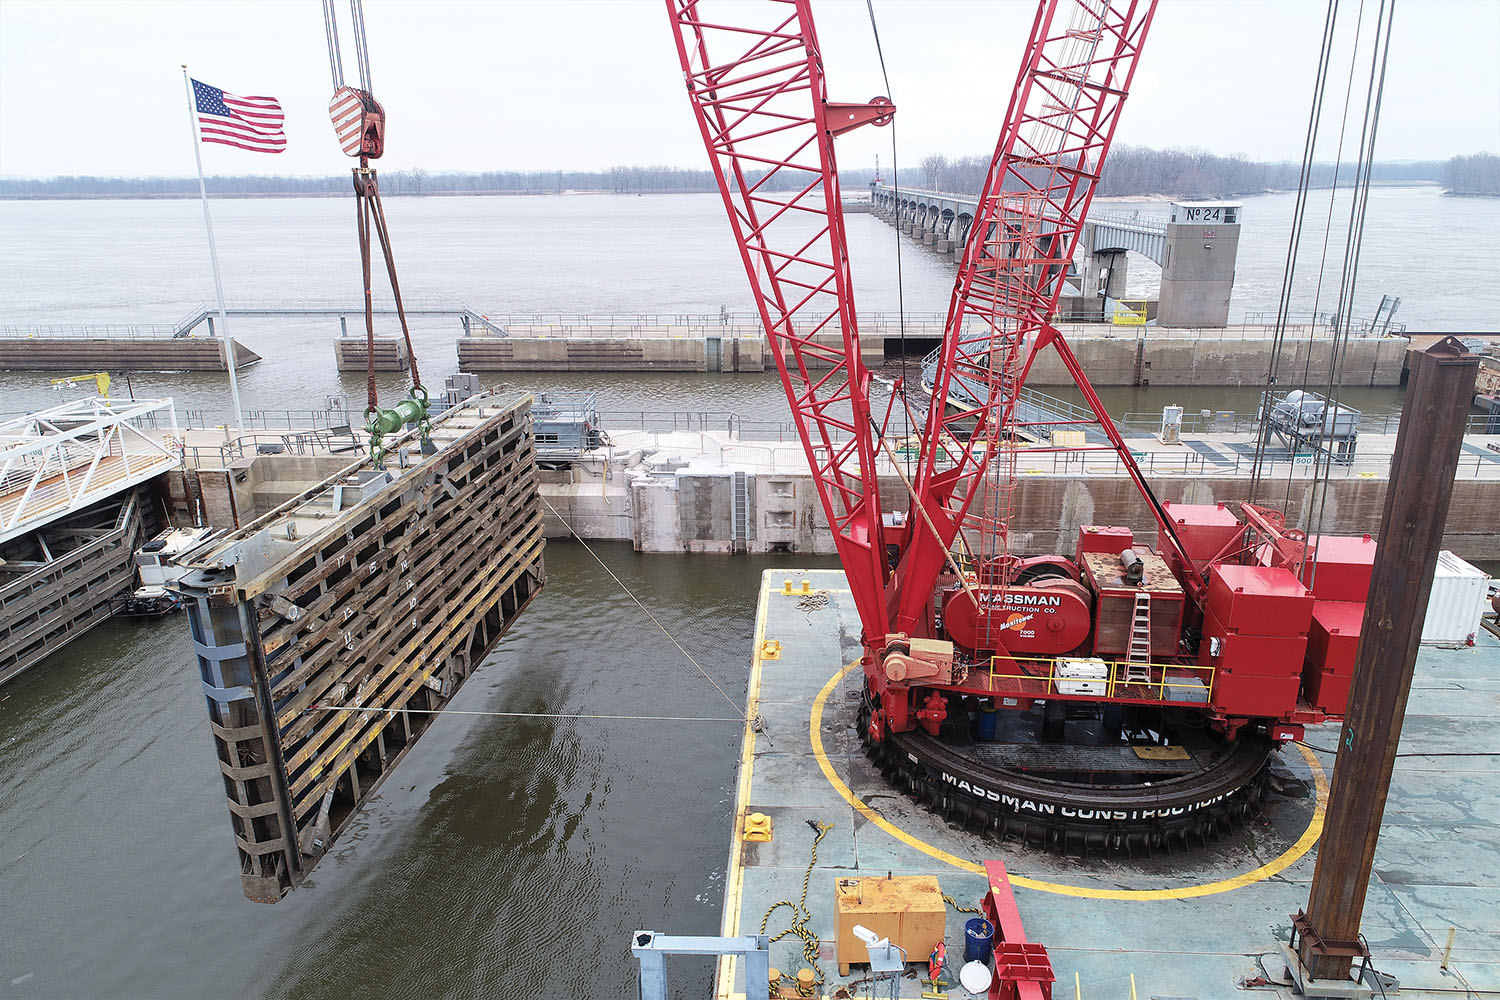 Massman Replaces Anchorages At Locks 24 And 25